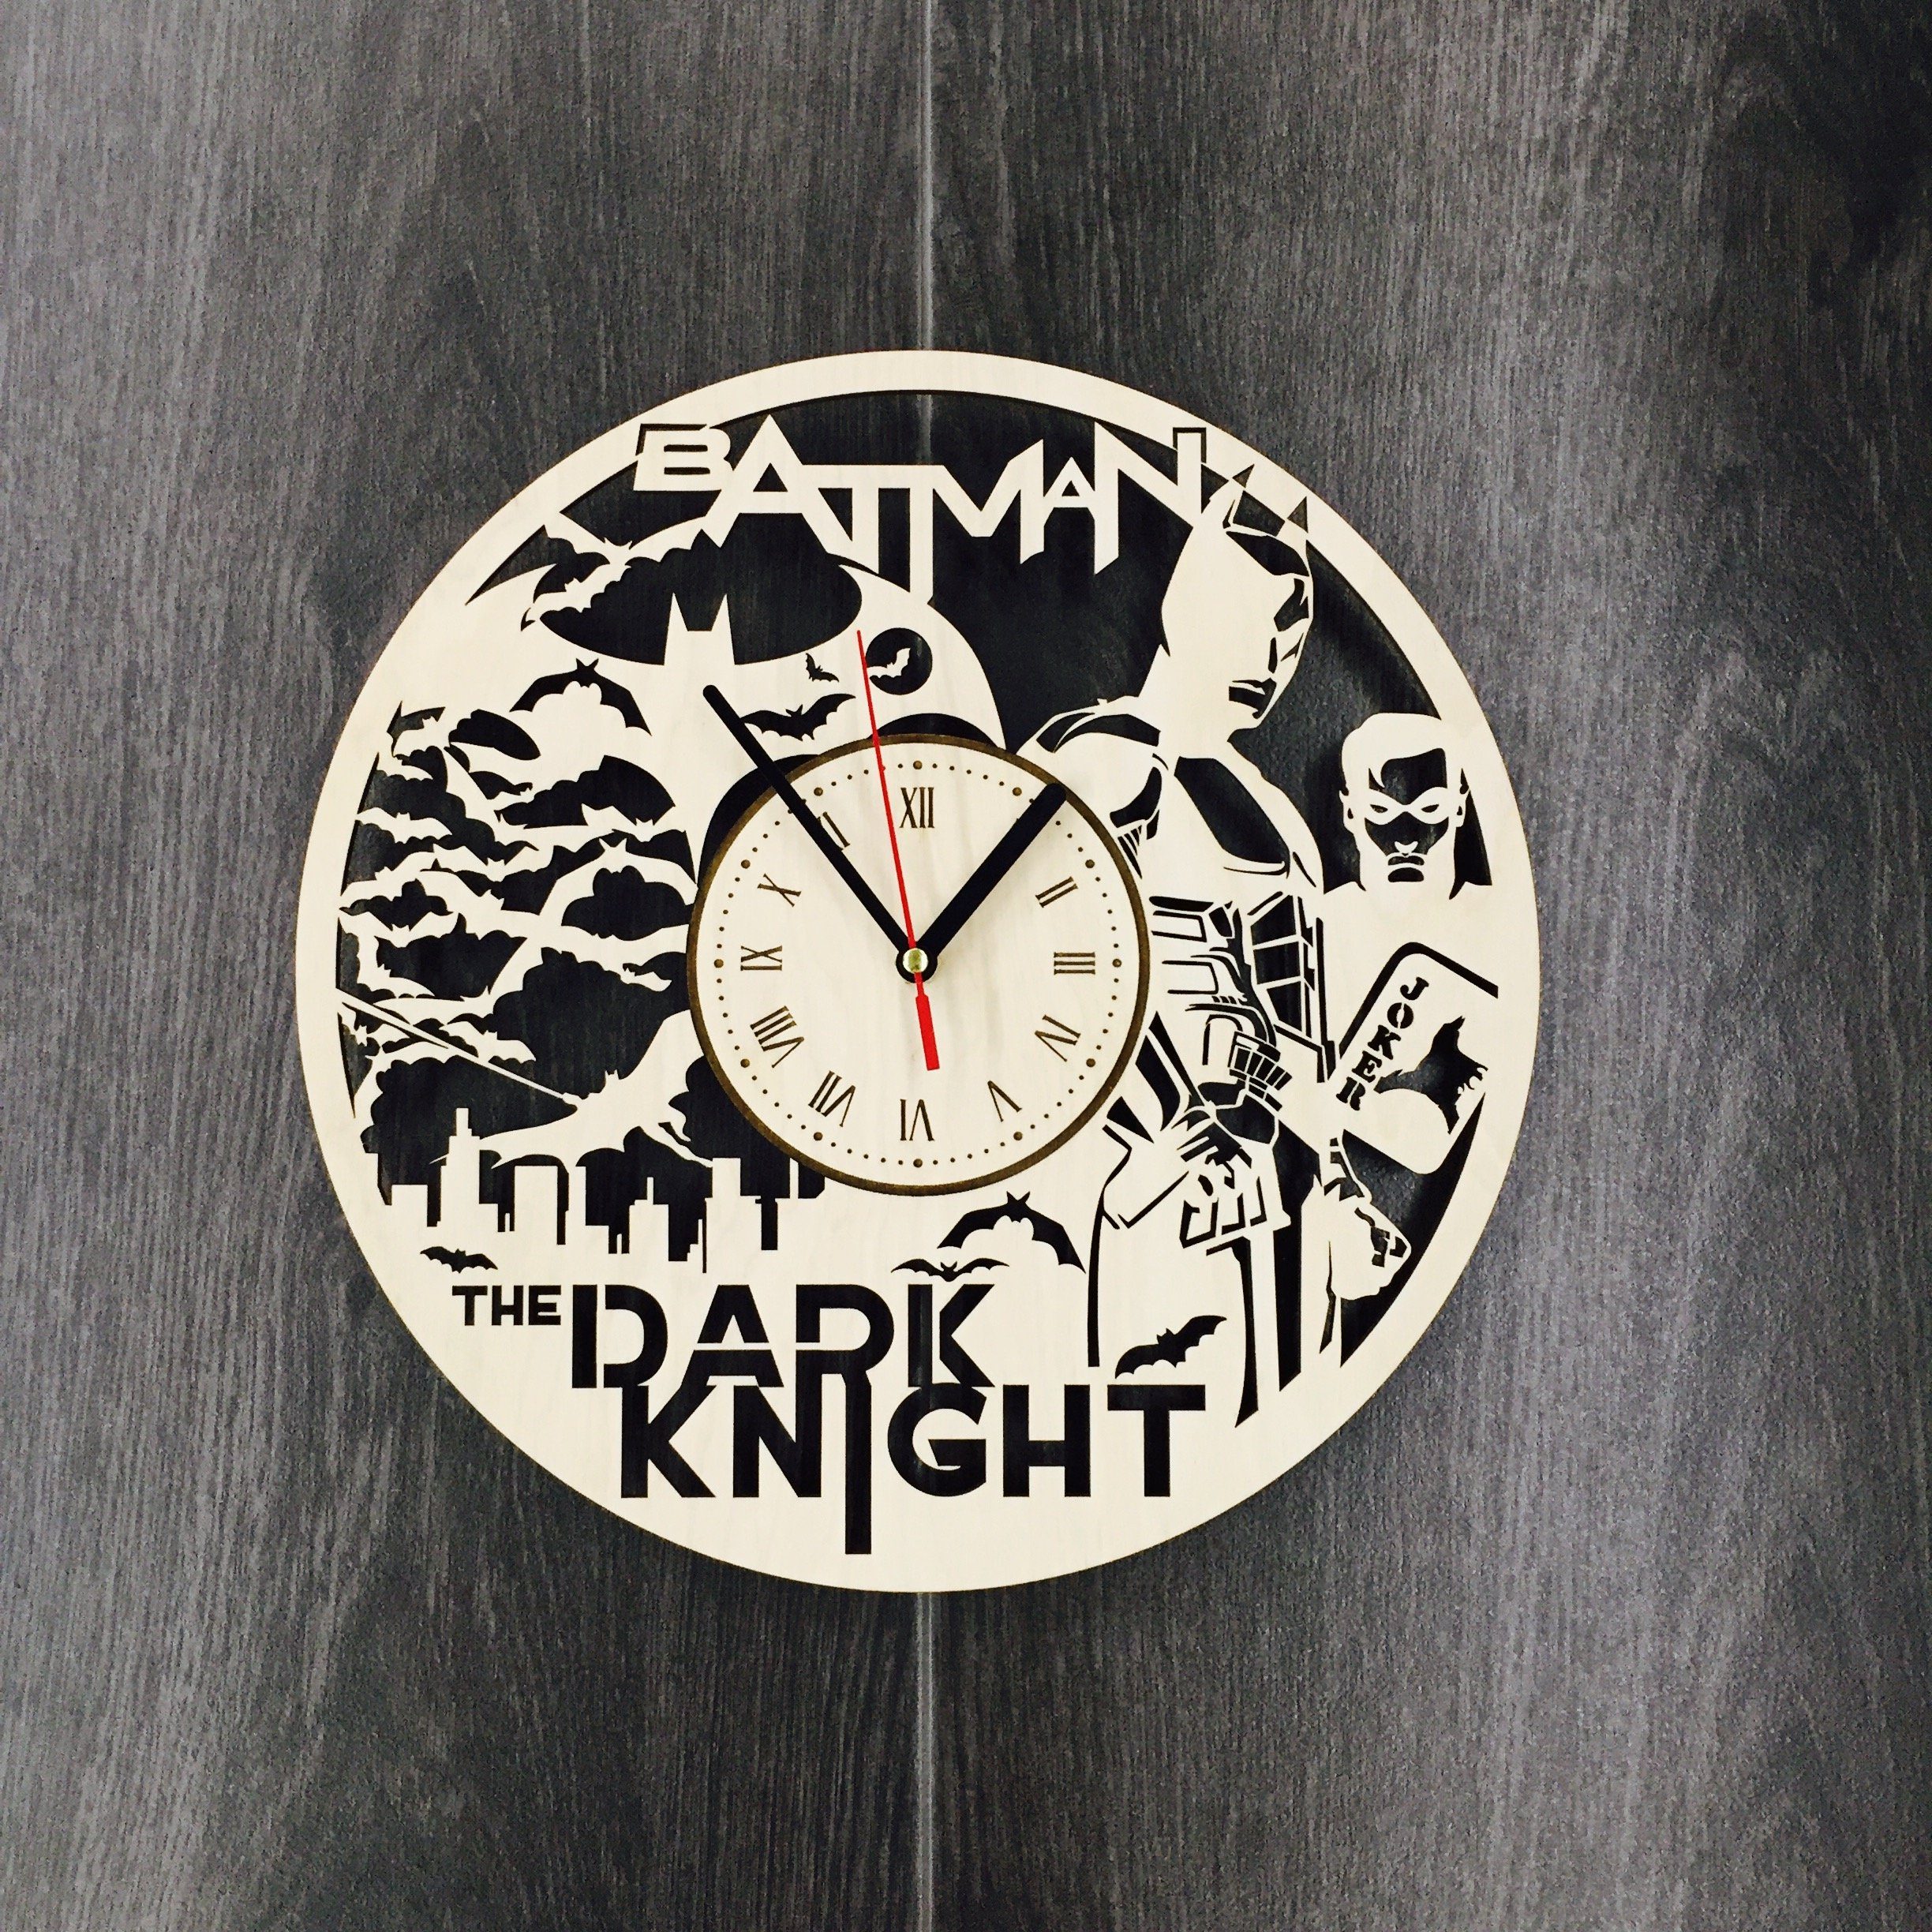 Batman Joker Wall Clock Made of WOOD - Perfect and Beautifully Cut - Decorate your Home with MODERN ART - UNIQUE GIFT for Him and Her - Size 12 Inches